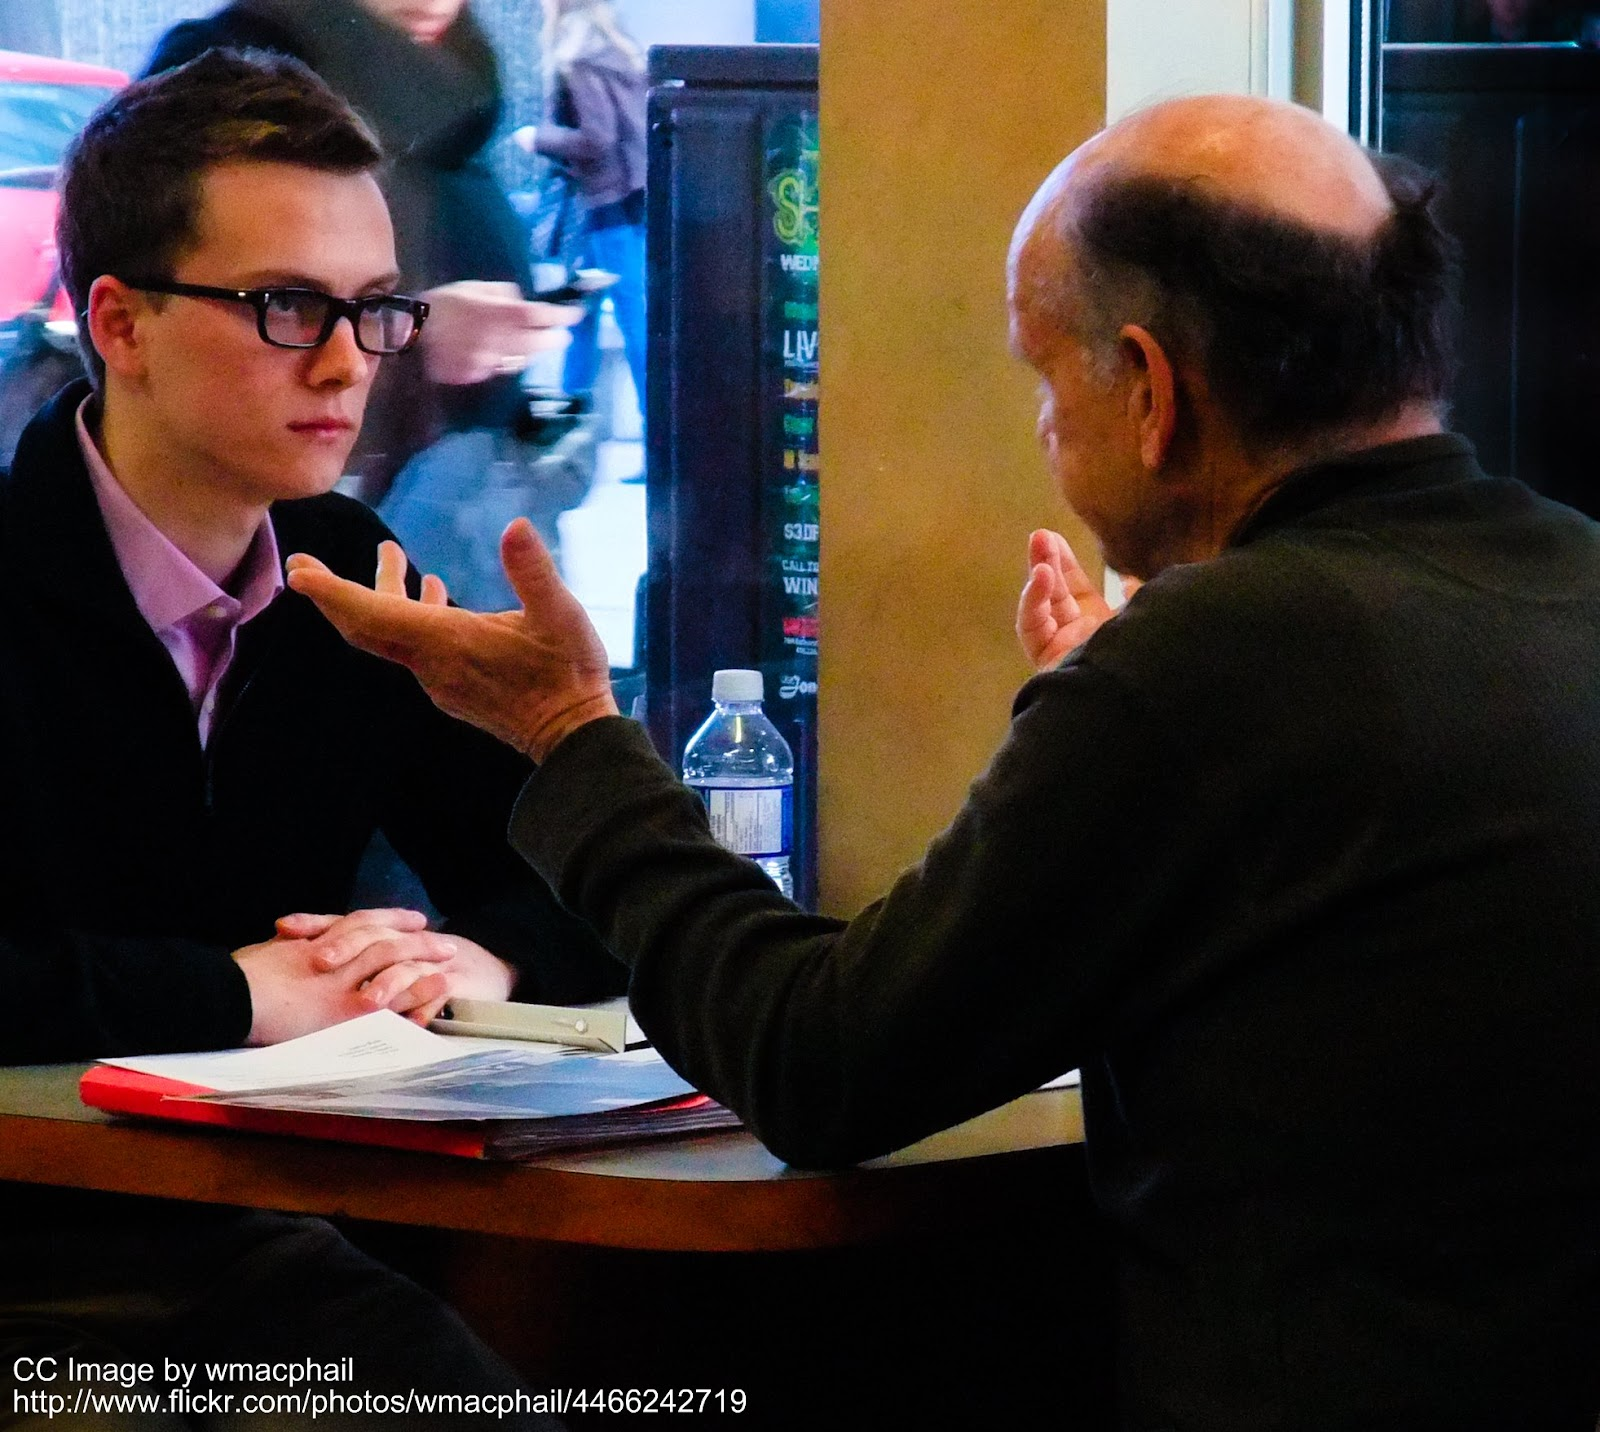 career advice why candidates should avoid the ambush bringing your resume to informational interviews you scored an informational interview an influential manager at your target company should